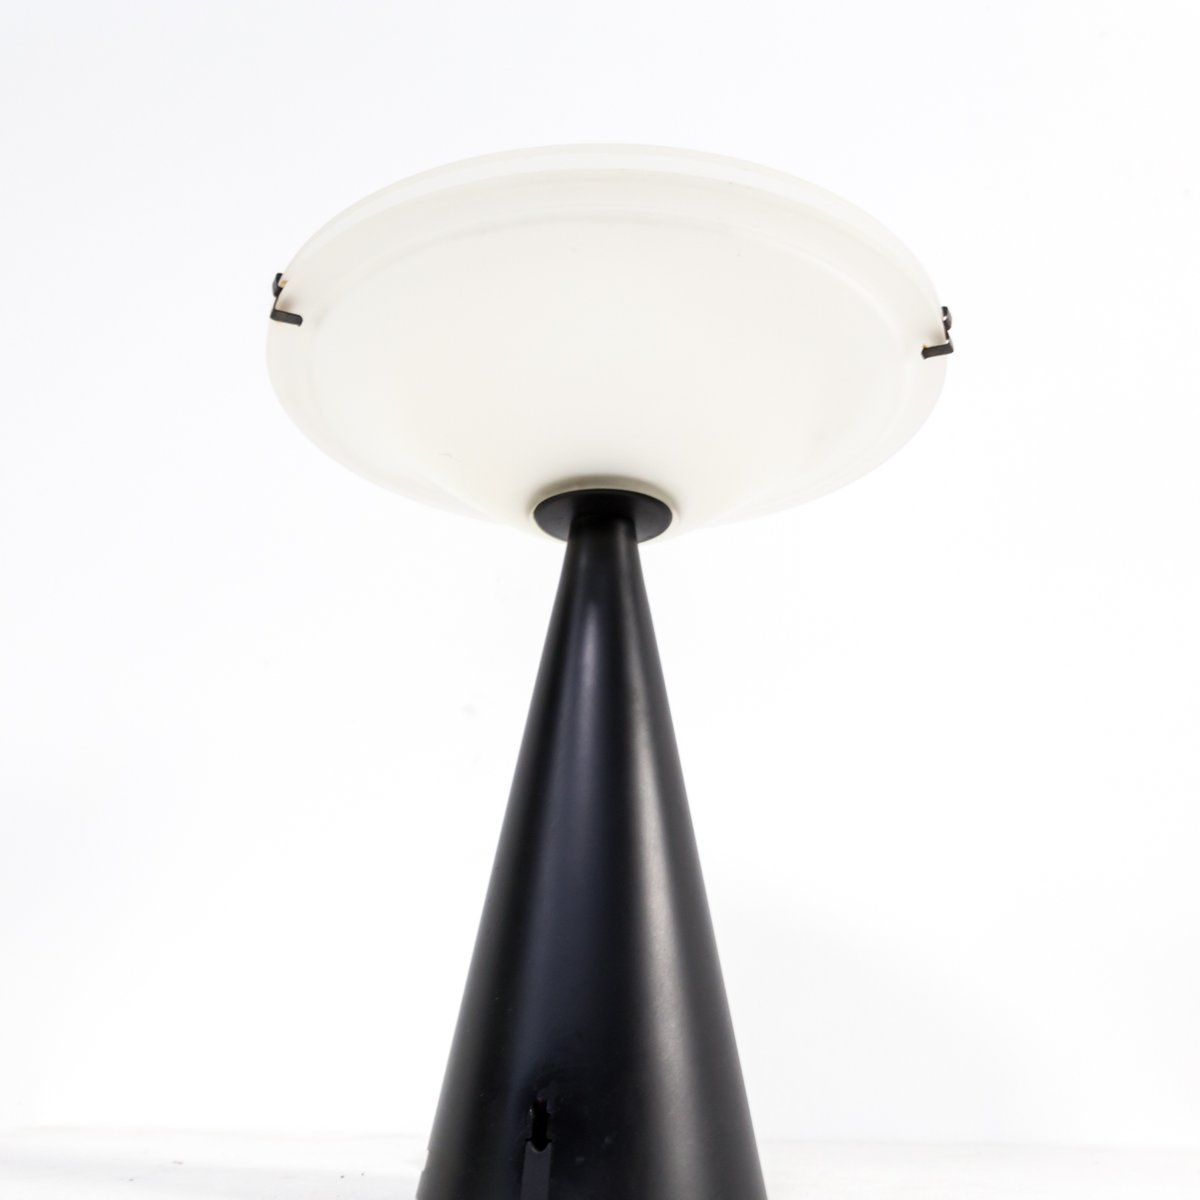 alien table lamp by luciano cesaro for tre ci luce 1970s for sale at pamono. Black Bedroom Furniture Sets. Home Design Ideas